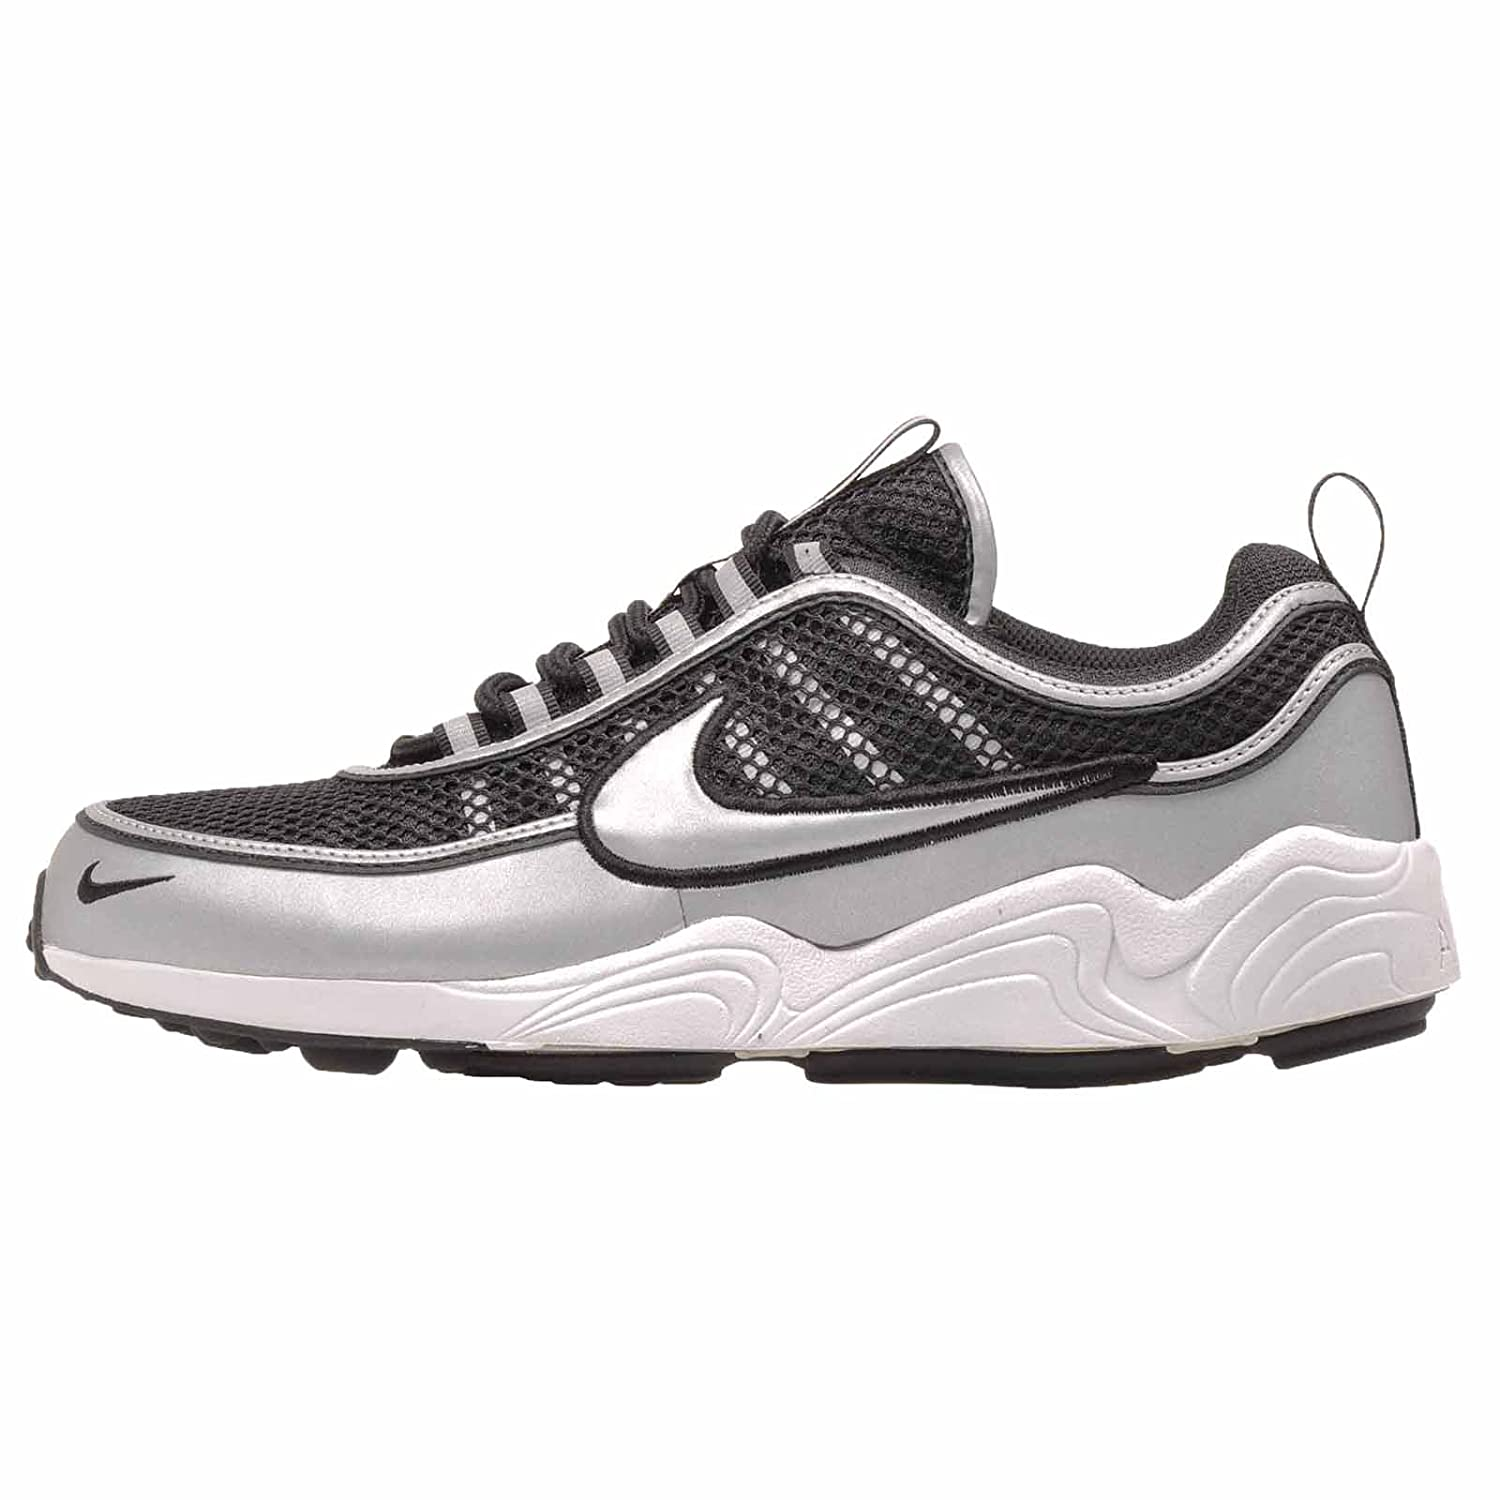 save up to 80% shopping wide varieties Nike Men's Air Zoom Spiridon 16, Black/Metallic Silver, 13 ...